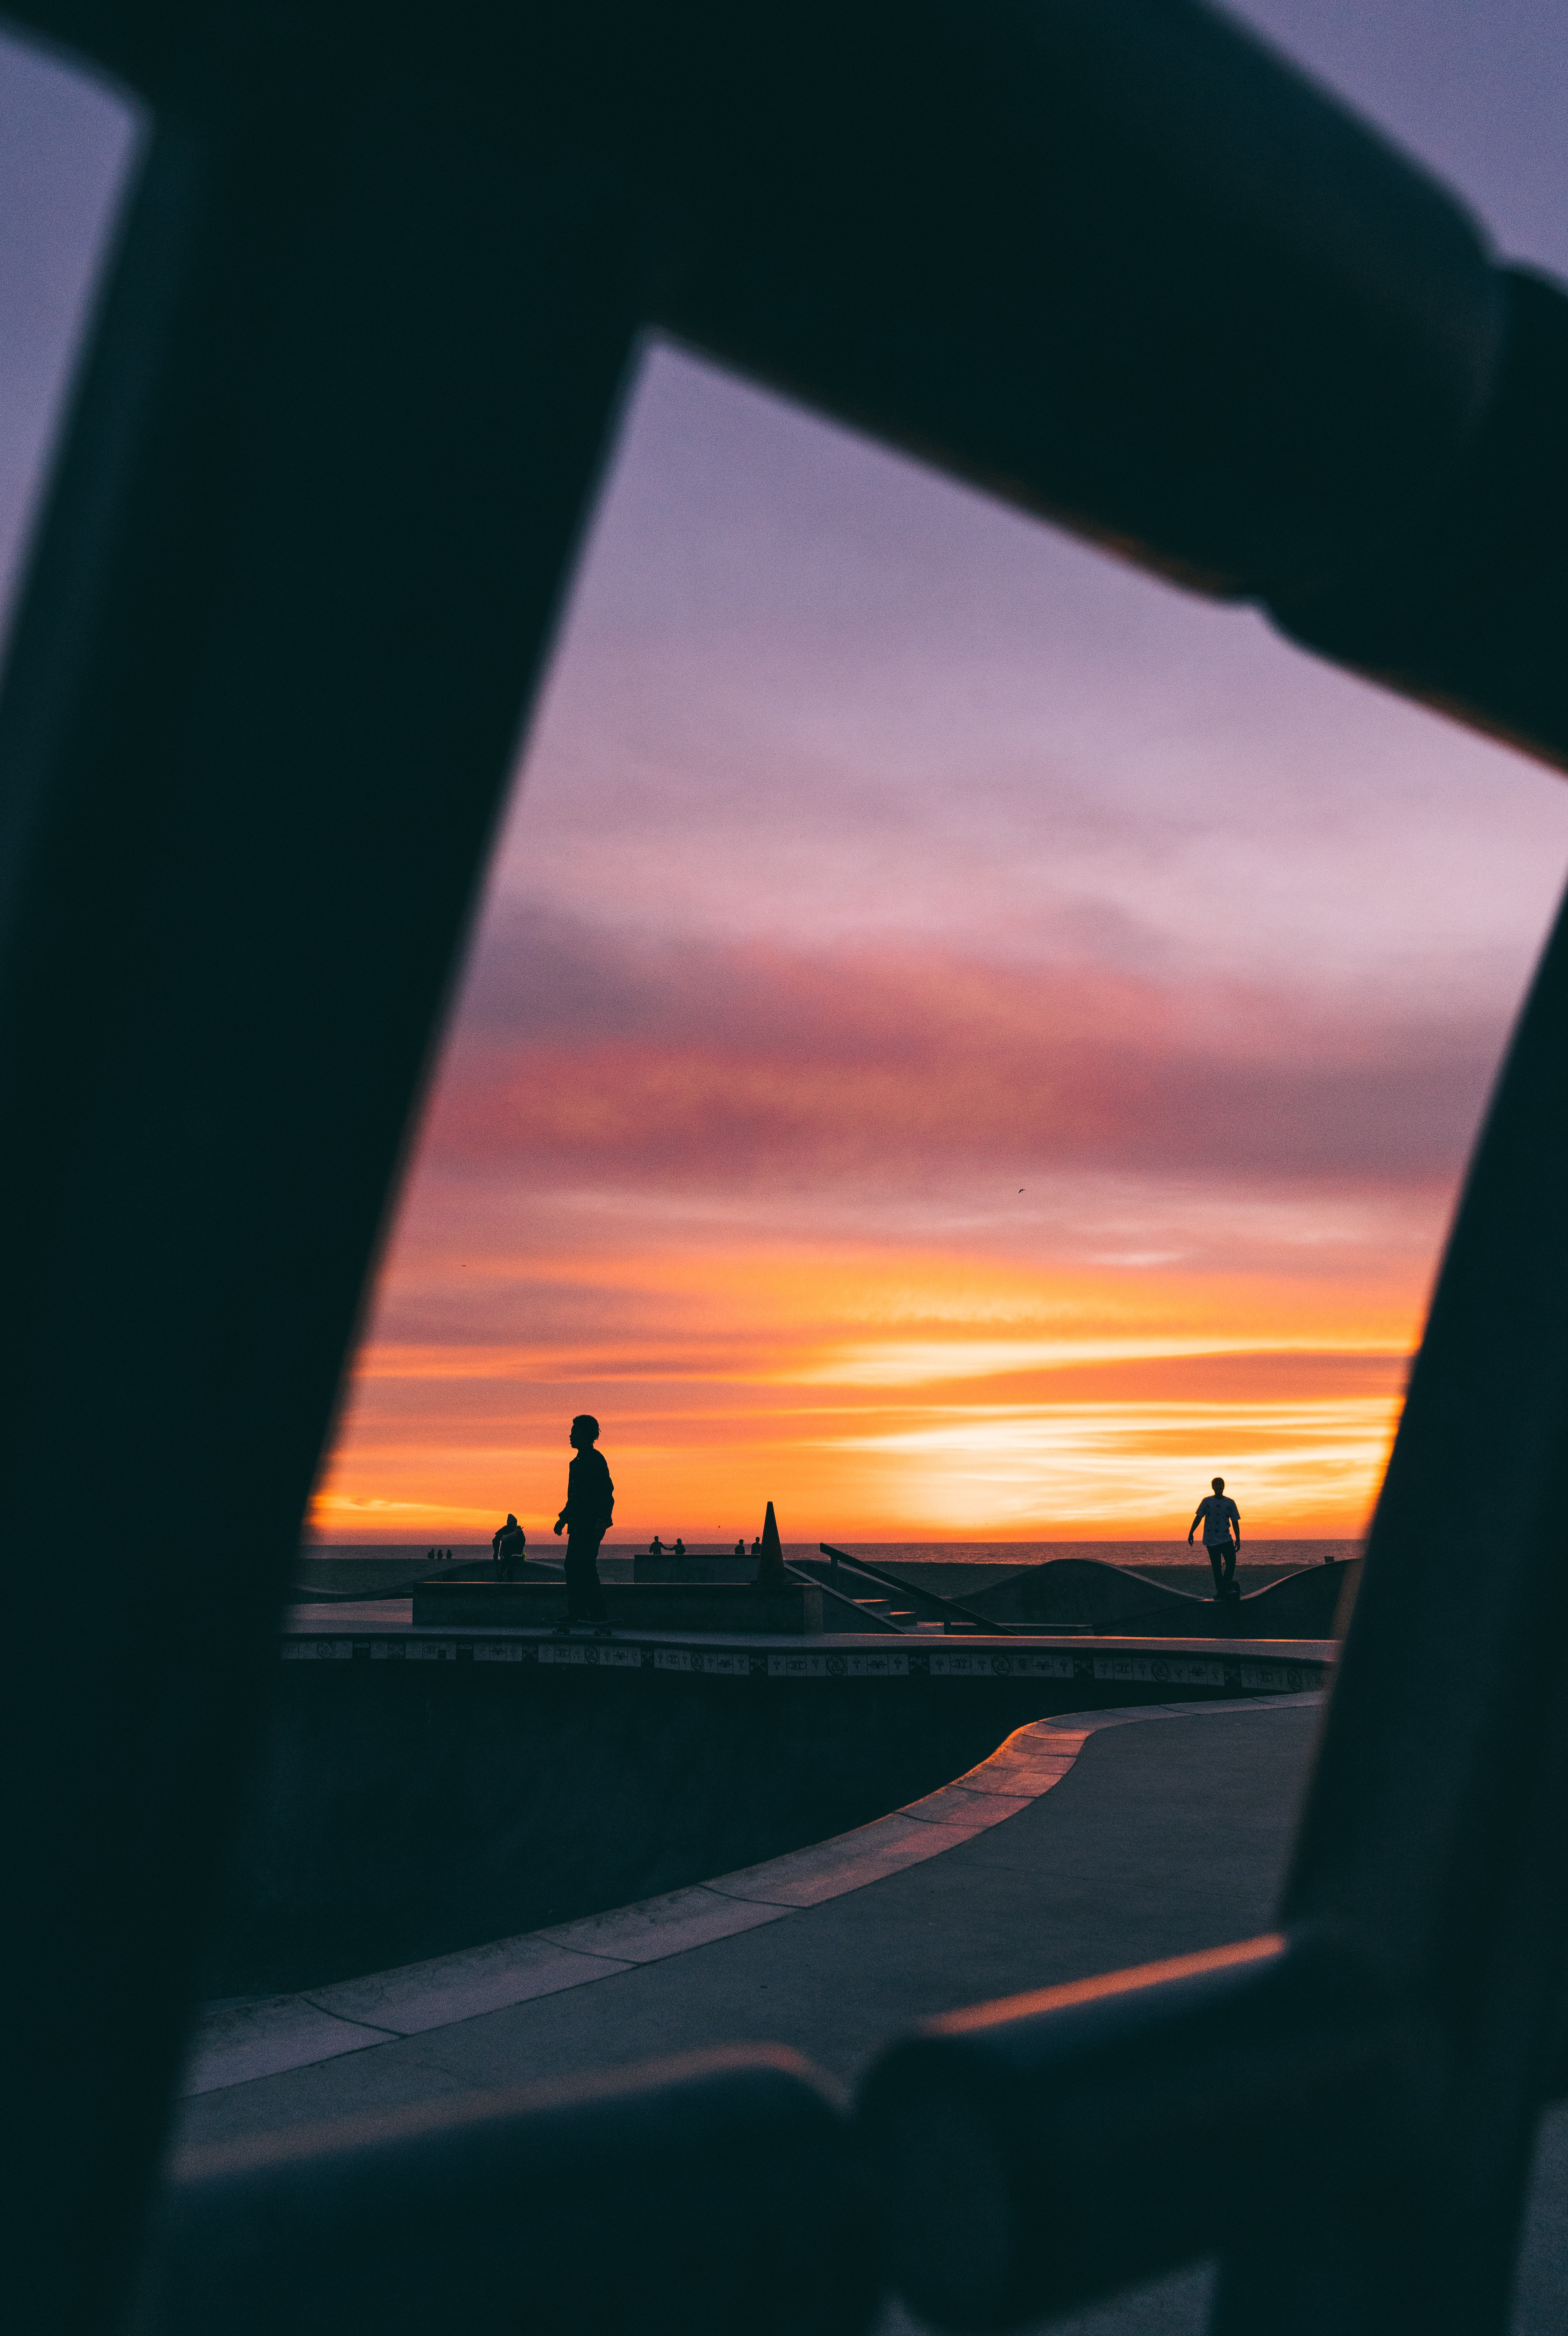 silhouette photography of people playing on skatepark